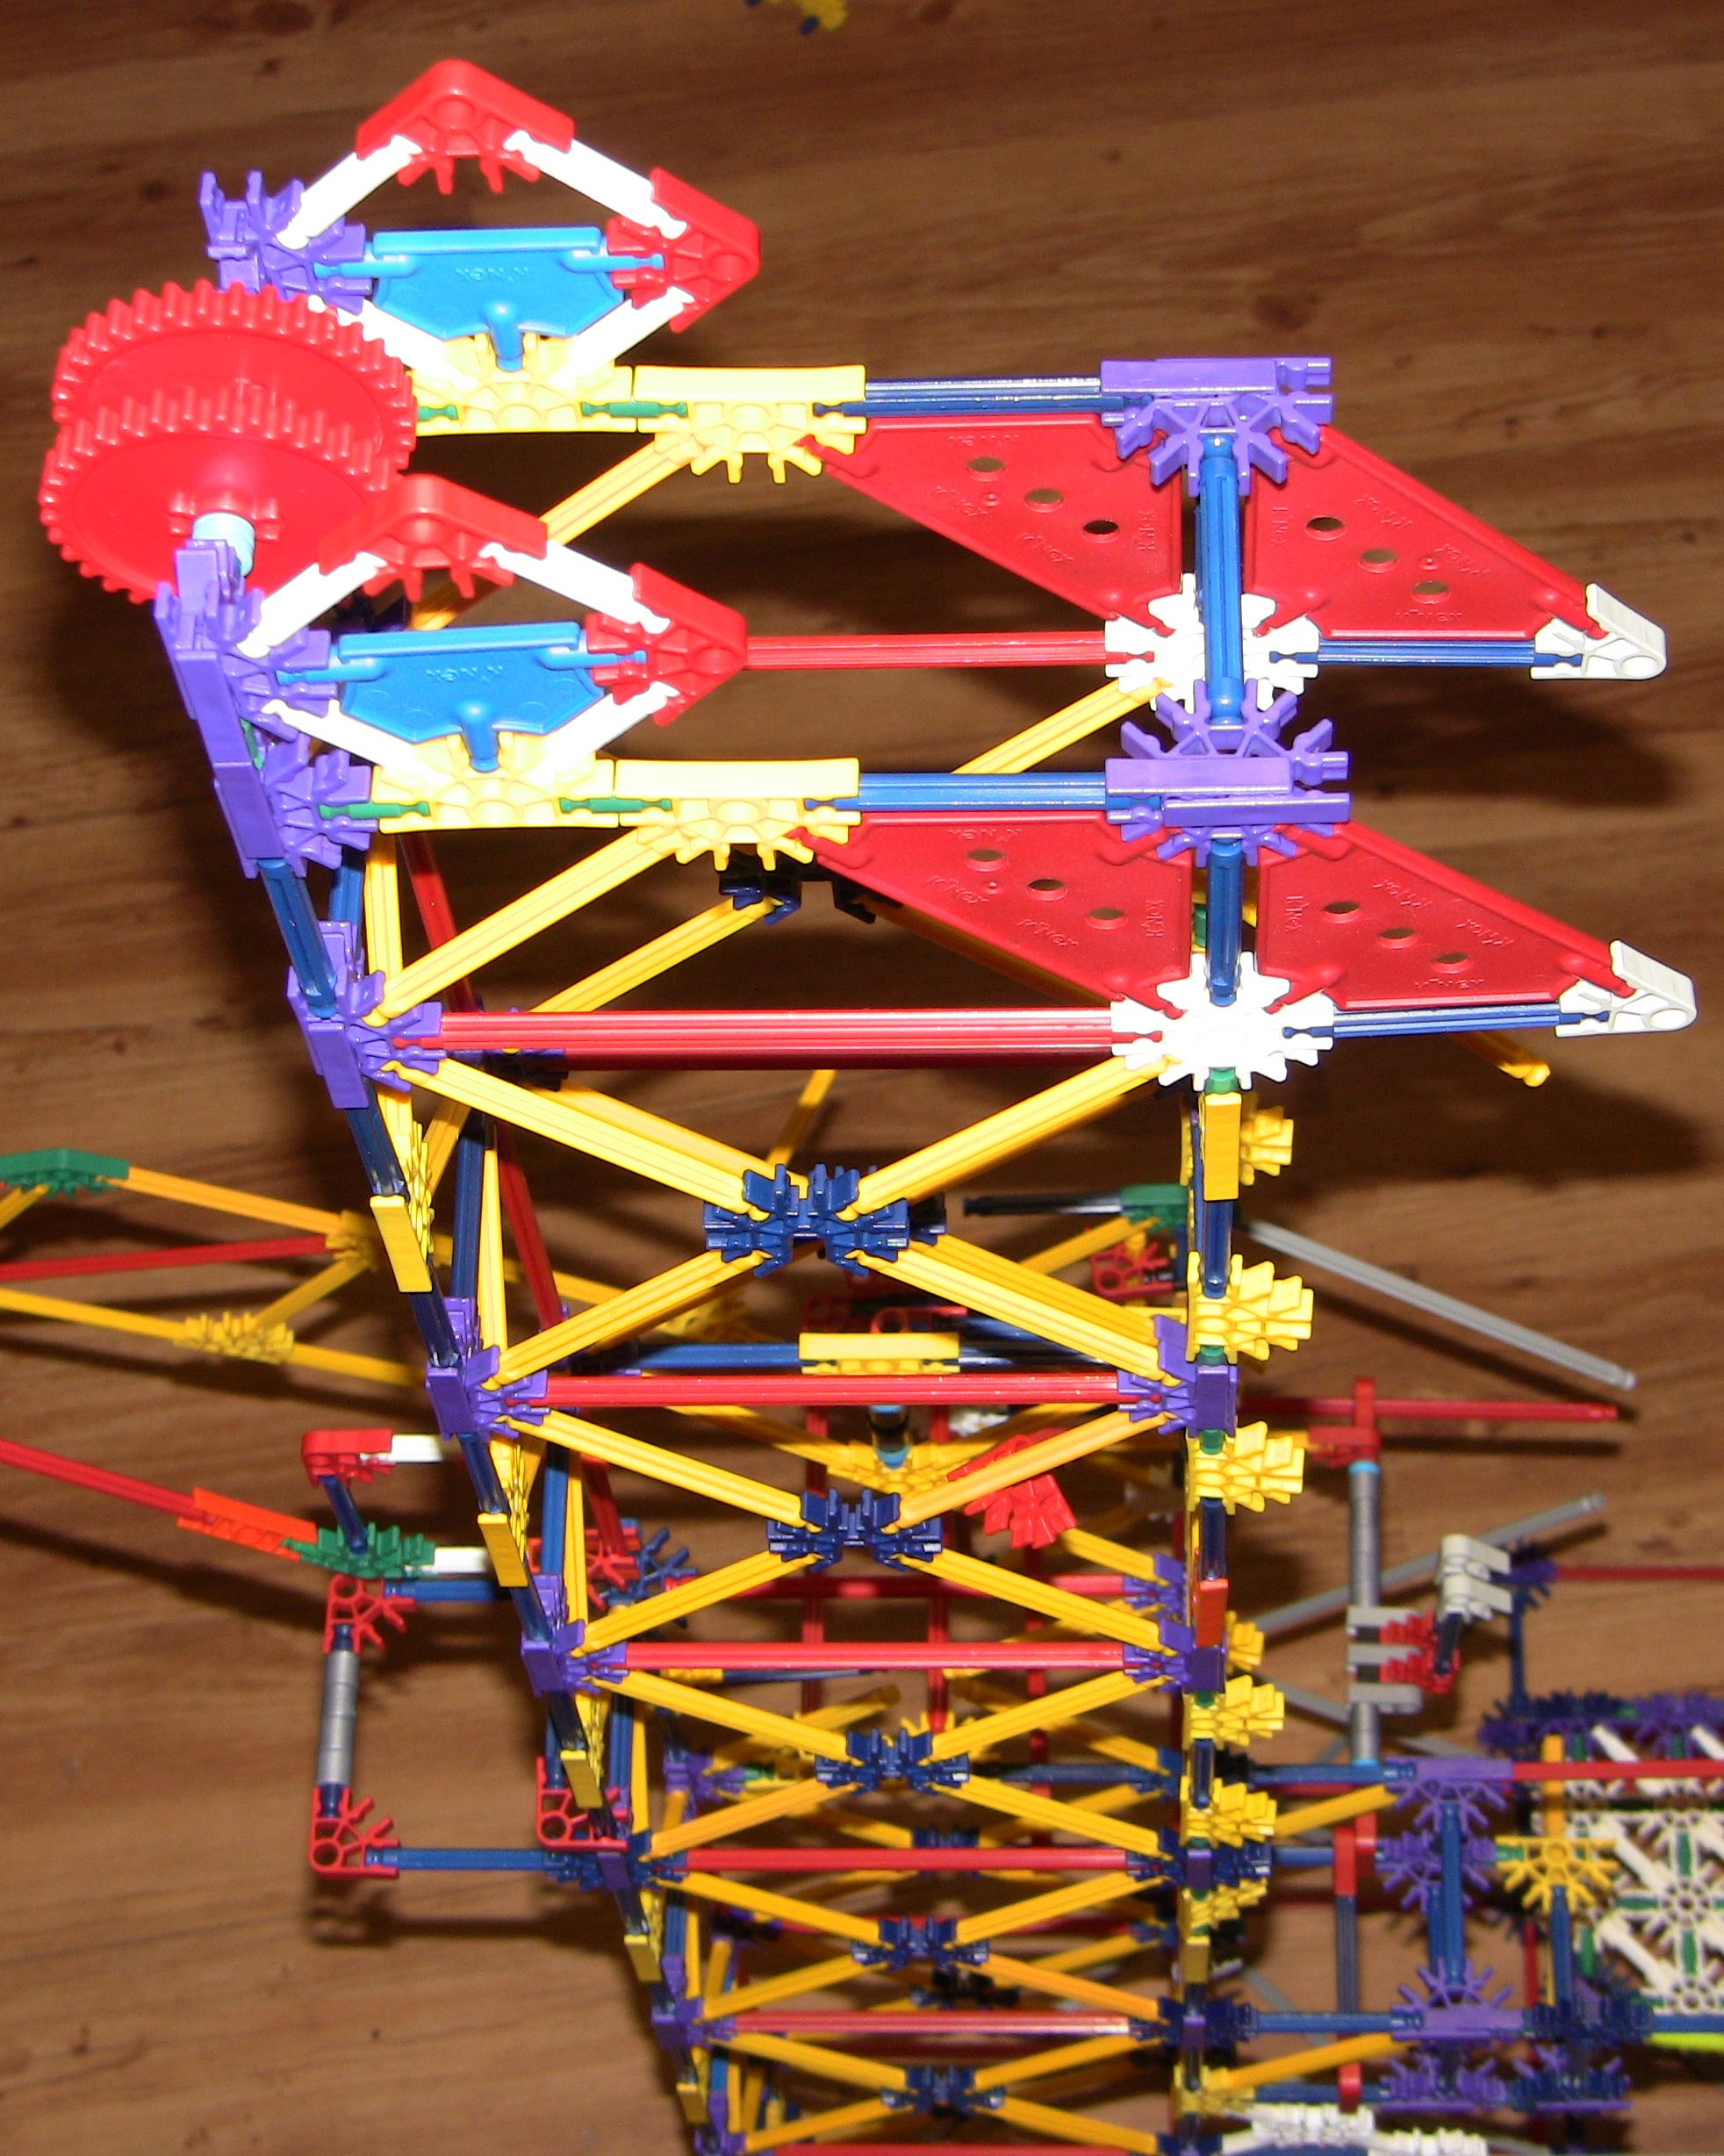 Picture of Support Structures